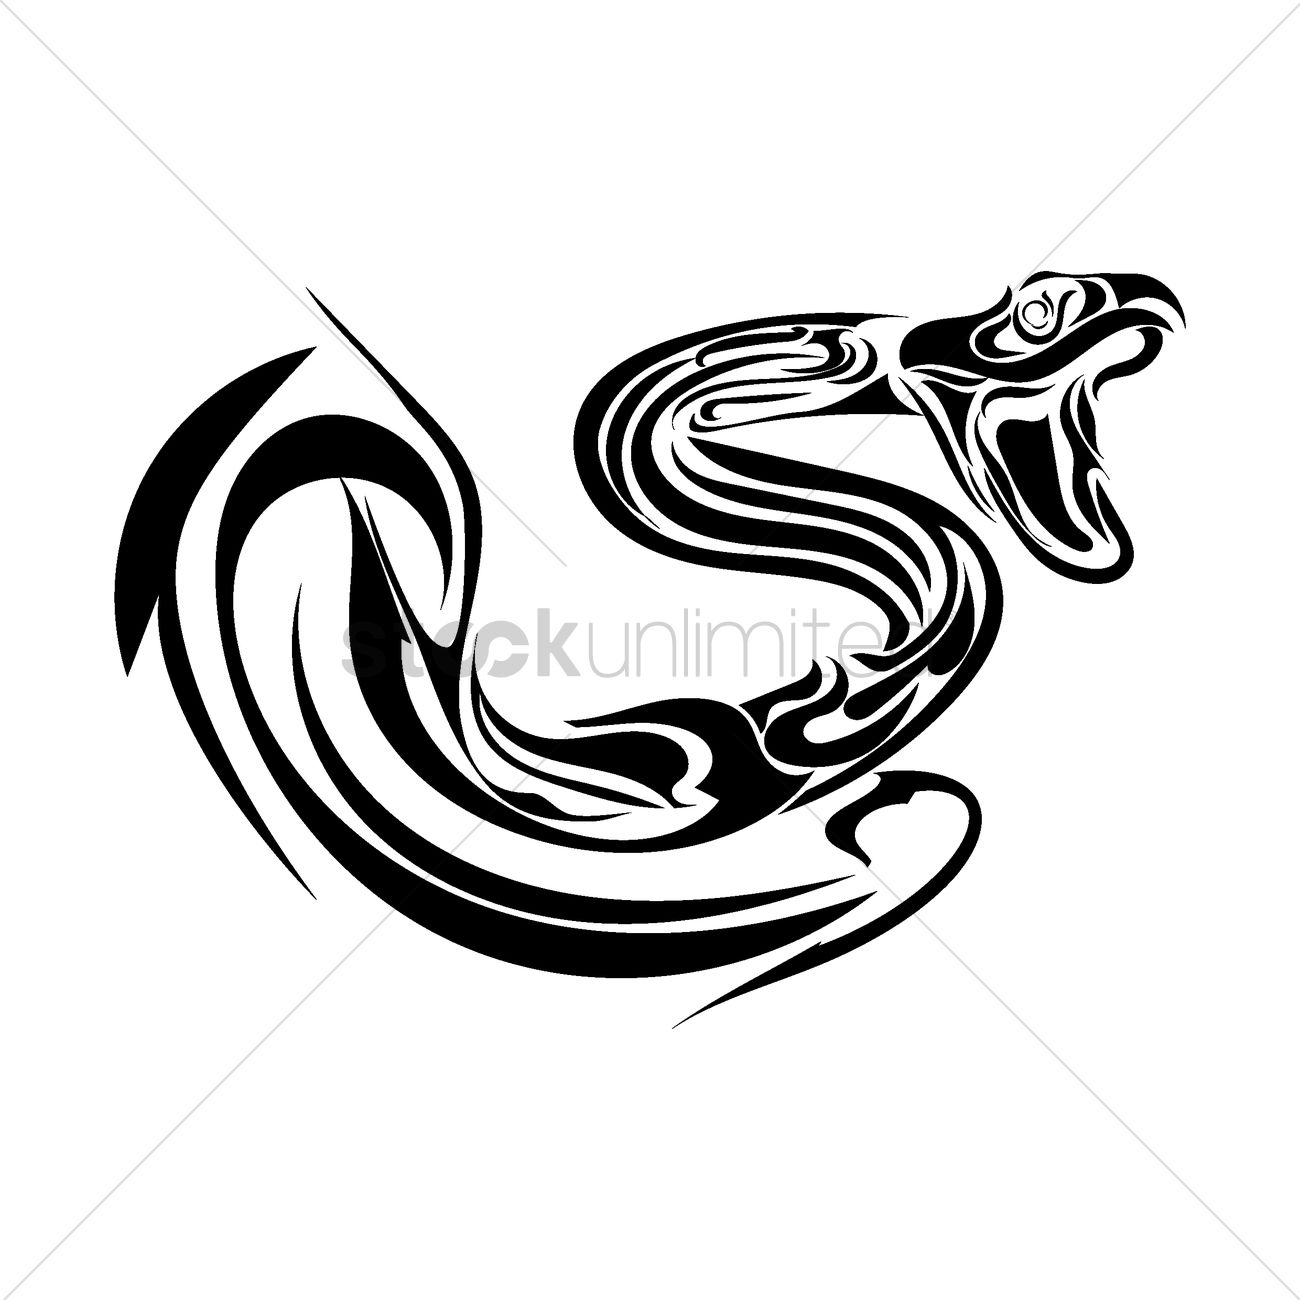 Snake Tattoo Line Drawing : Snake tattoo design vector image stockunlimited